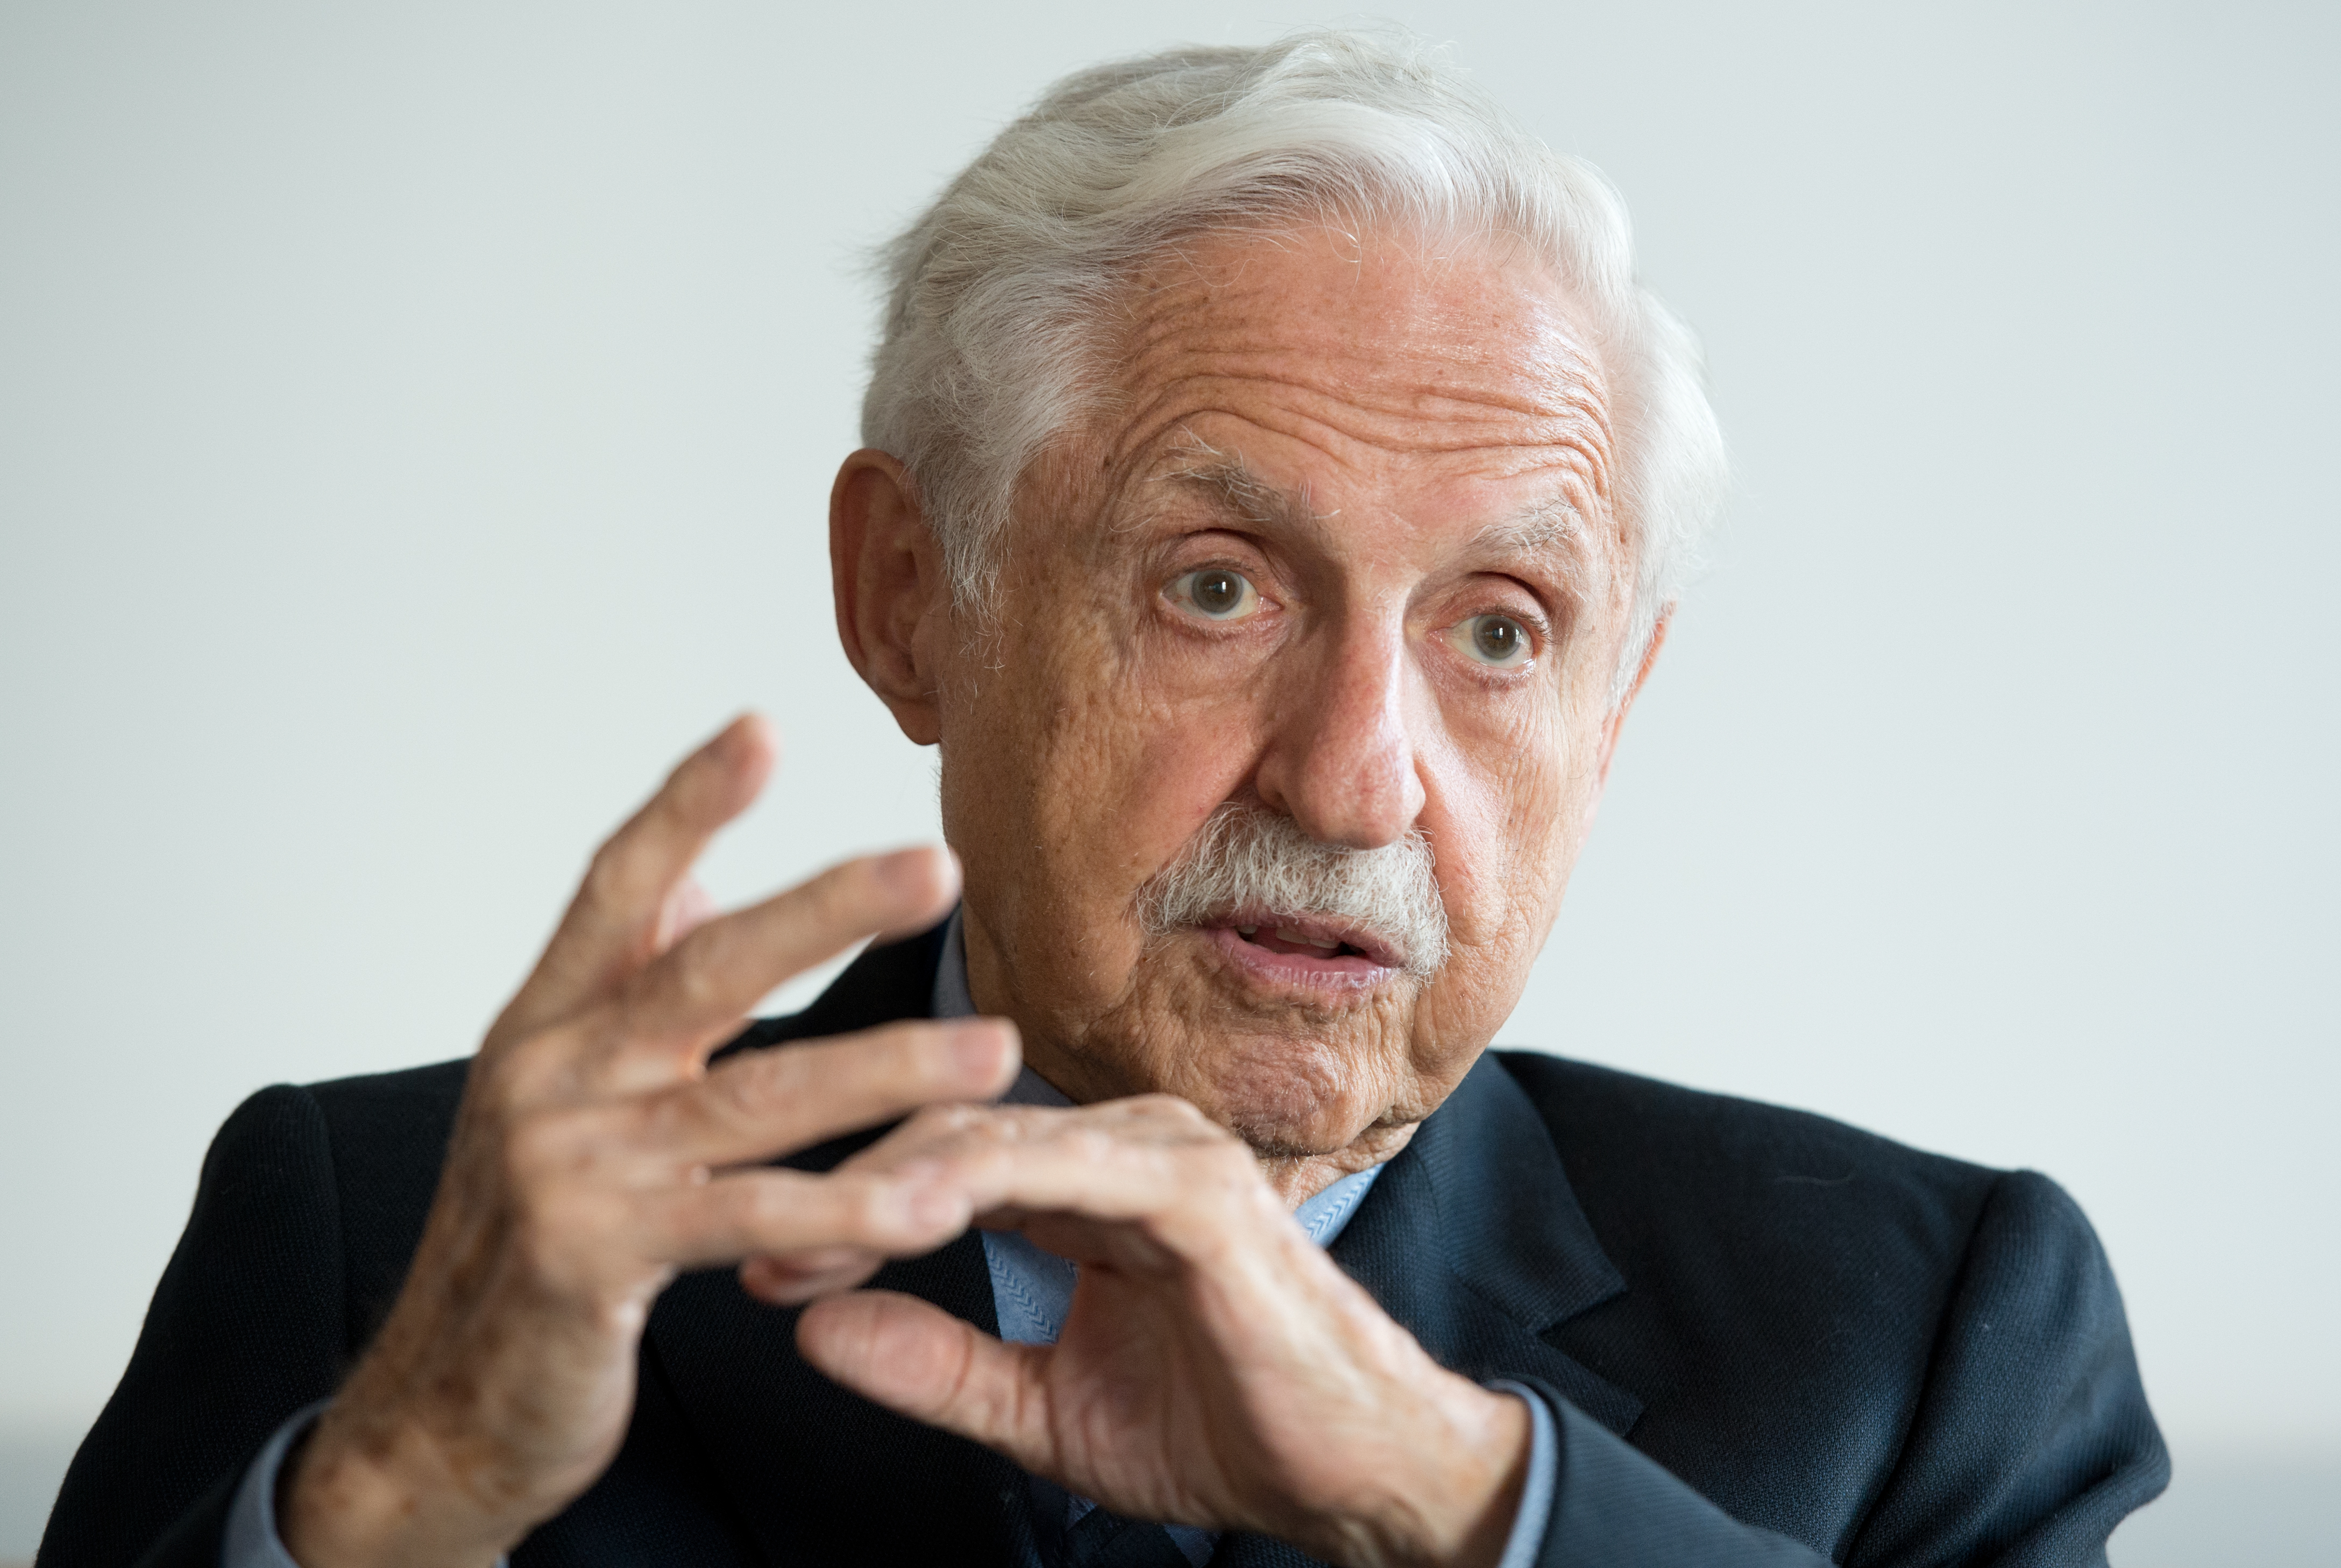 Scientist and patron of the arts Carl Djerassi sits during an interview with the DPA German Press Agency at the university in Frankfurt Main, Germany, 29 October 2013.